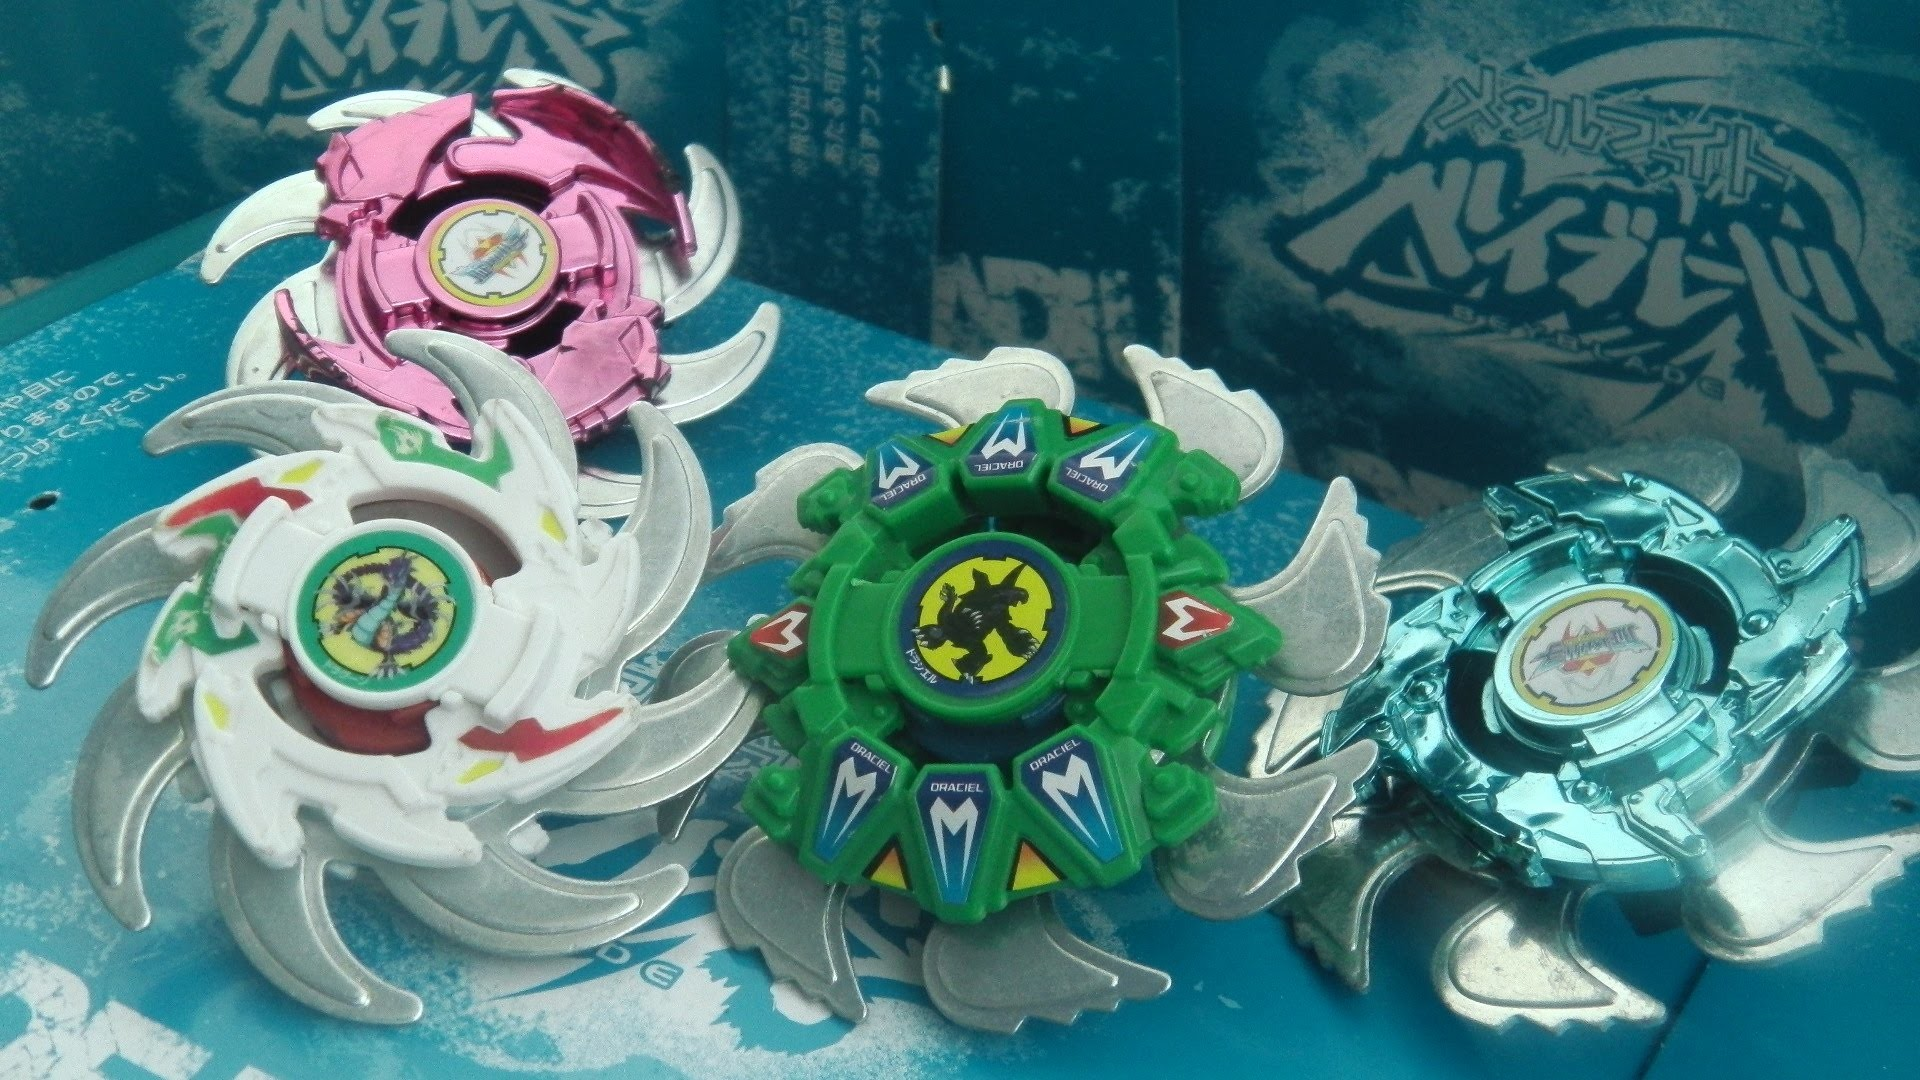 Spin Heat Weight Disks on Old Generation Beyblades – GEARED SHURIKENS? –  YouTube